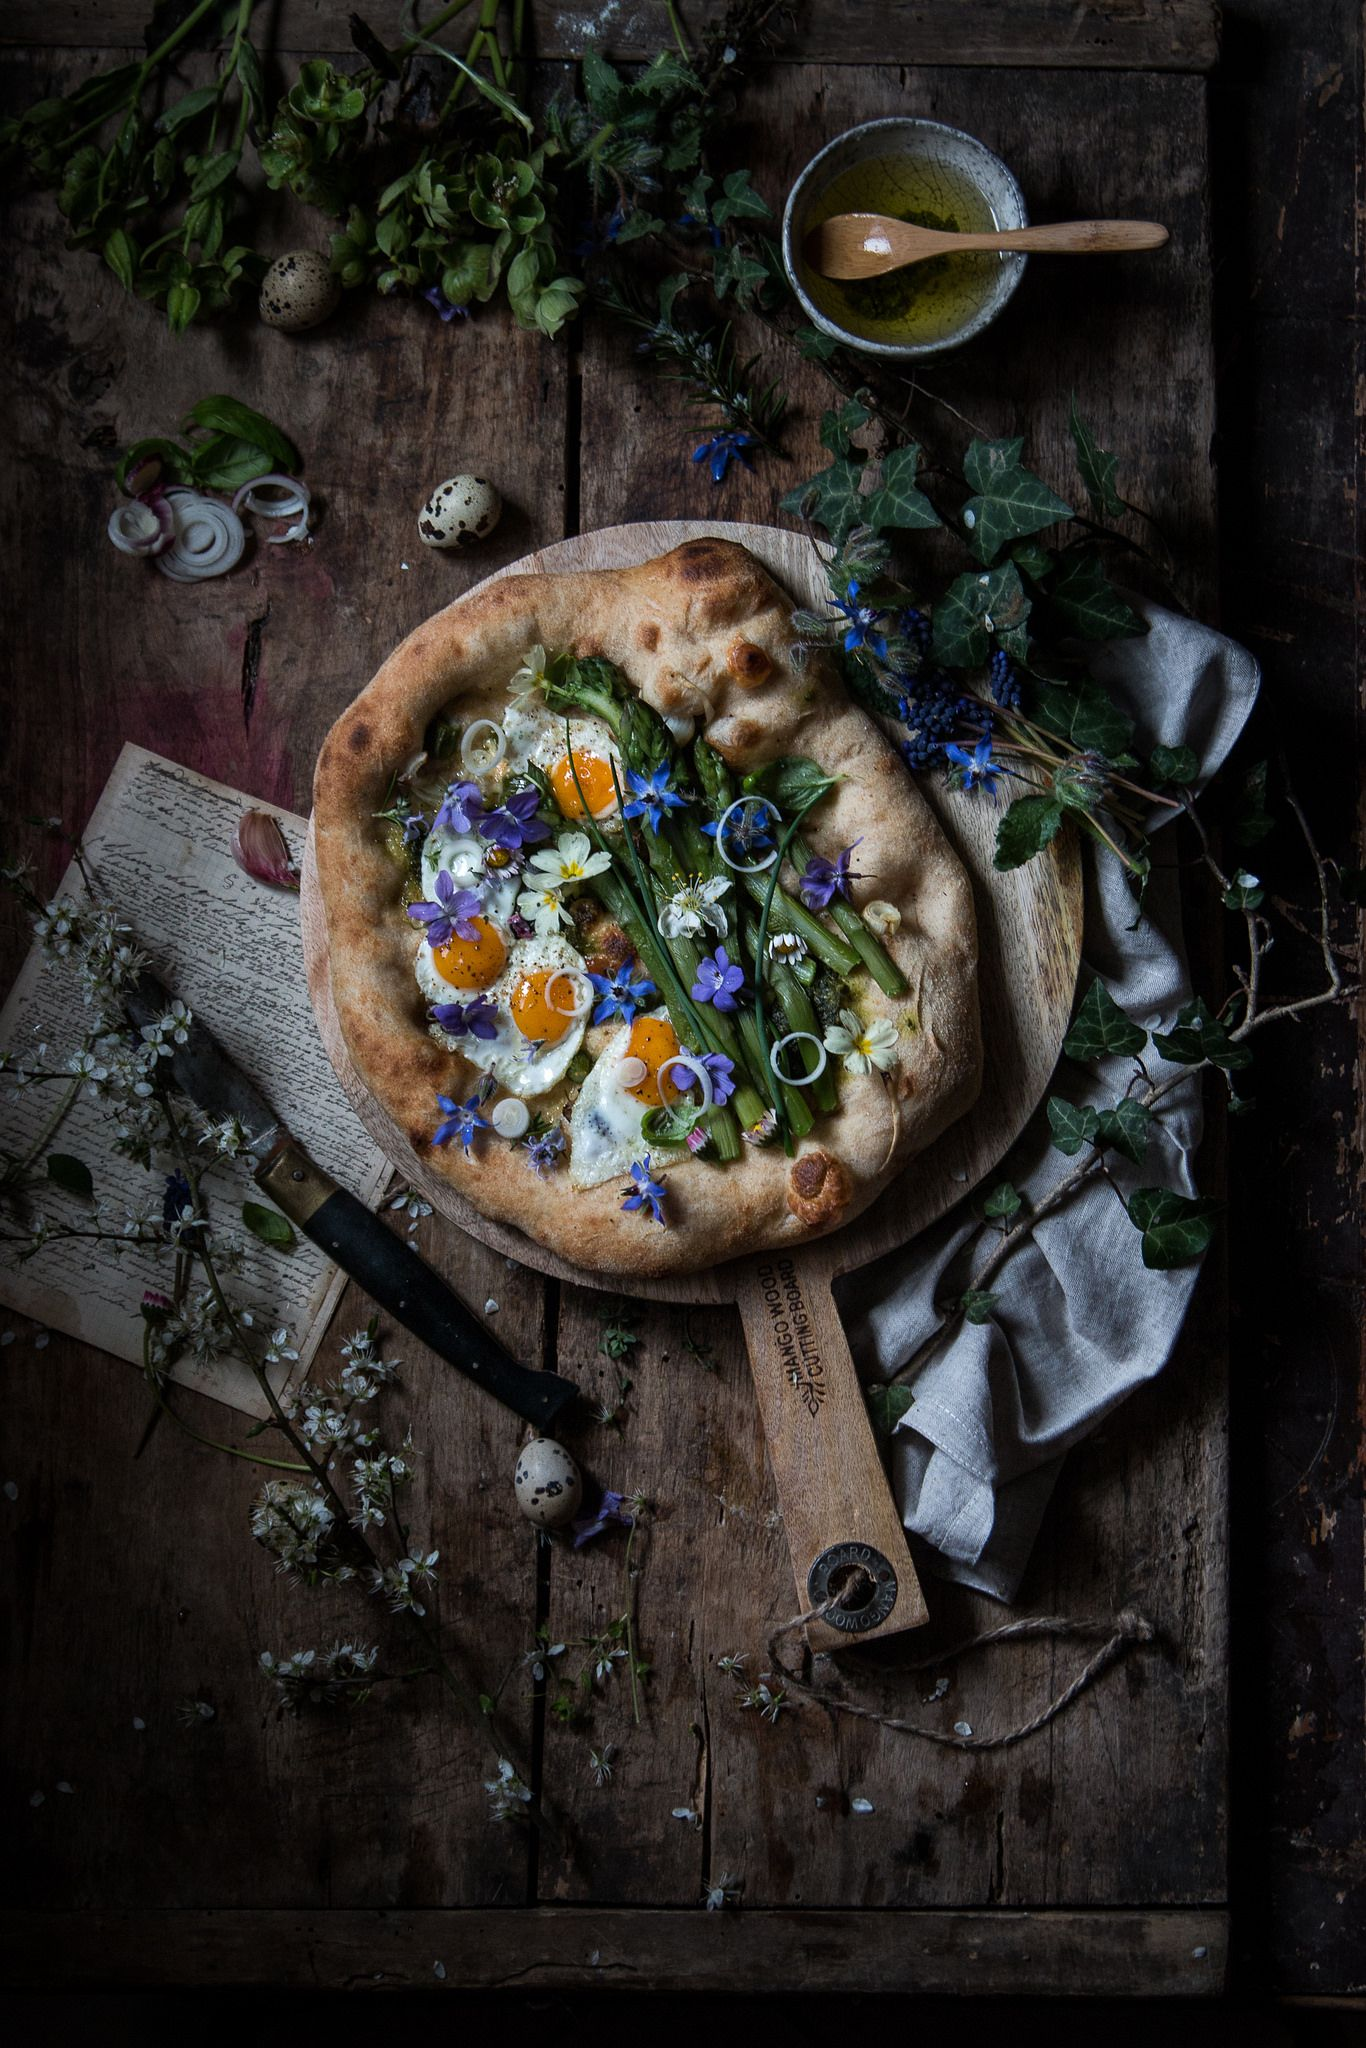 Pizza Con Asparagi 1 Di 1 Moody Food Photography Food Photo